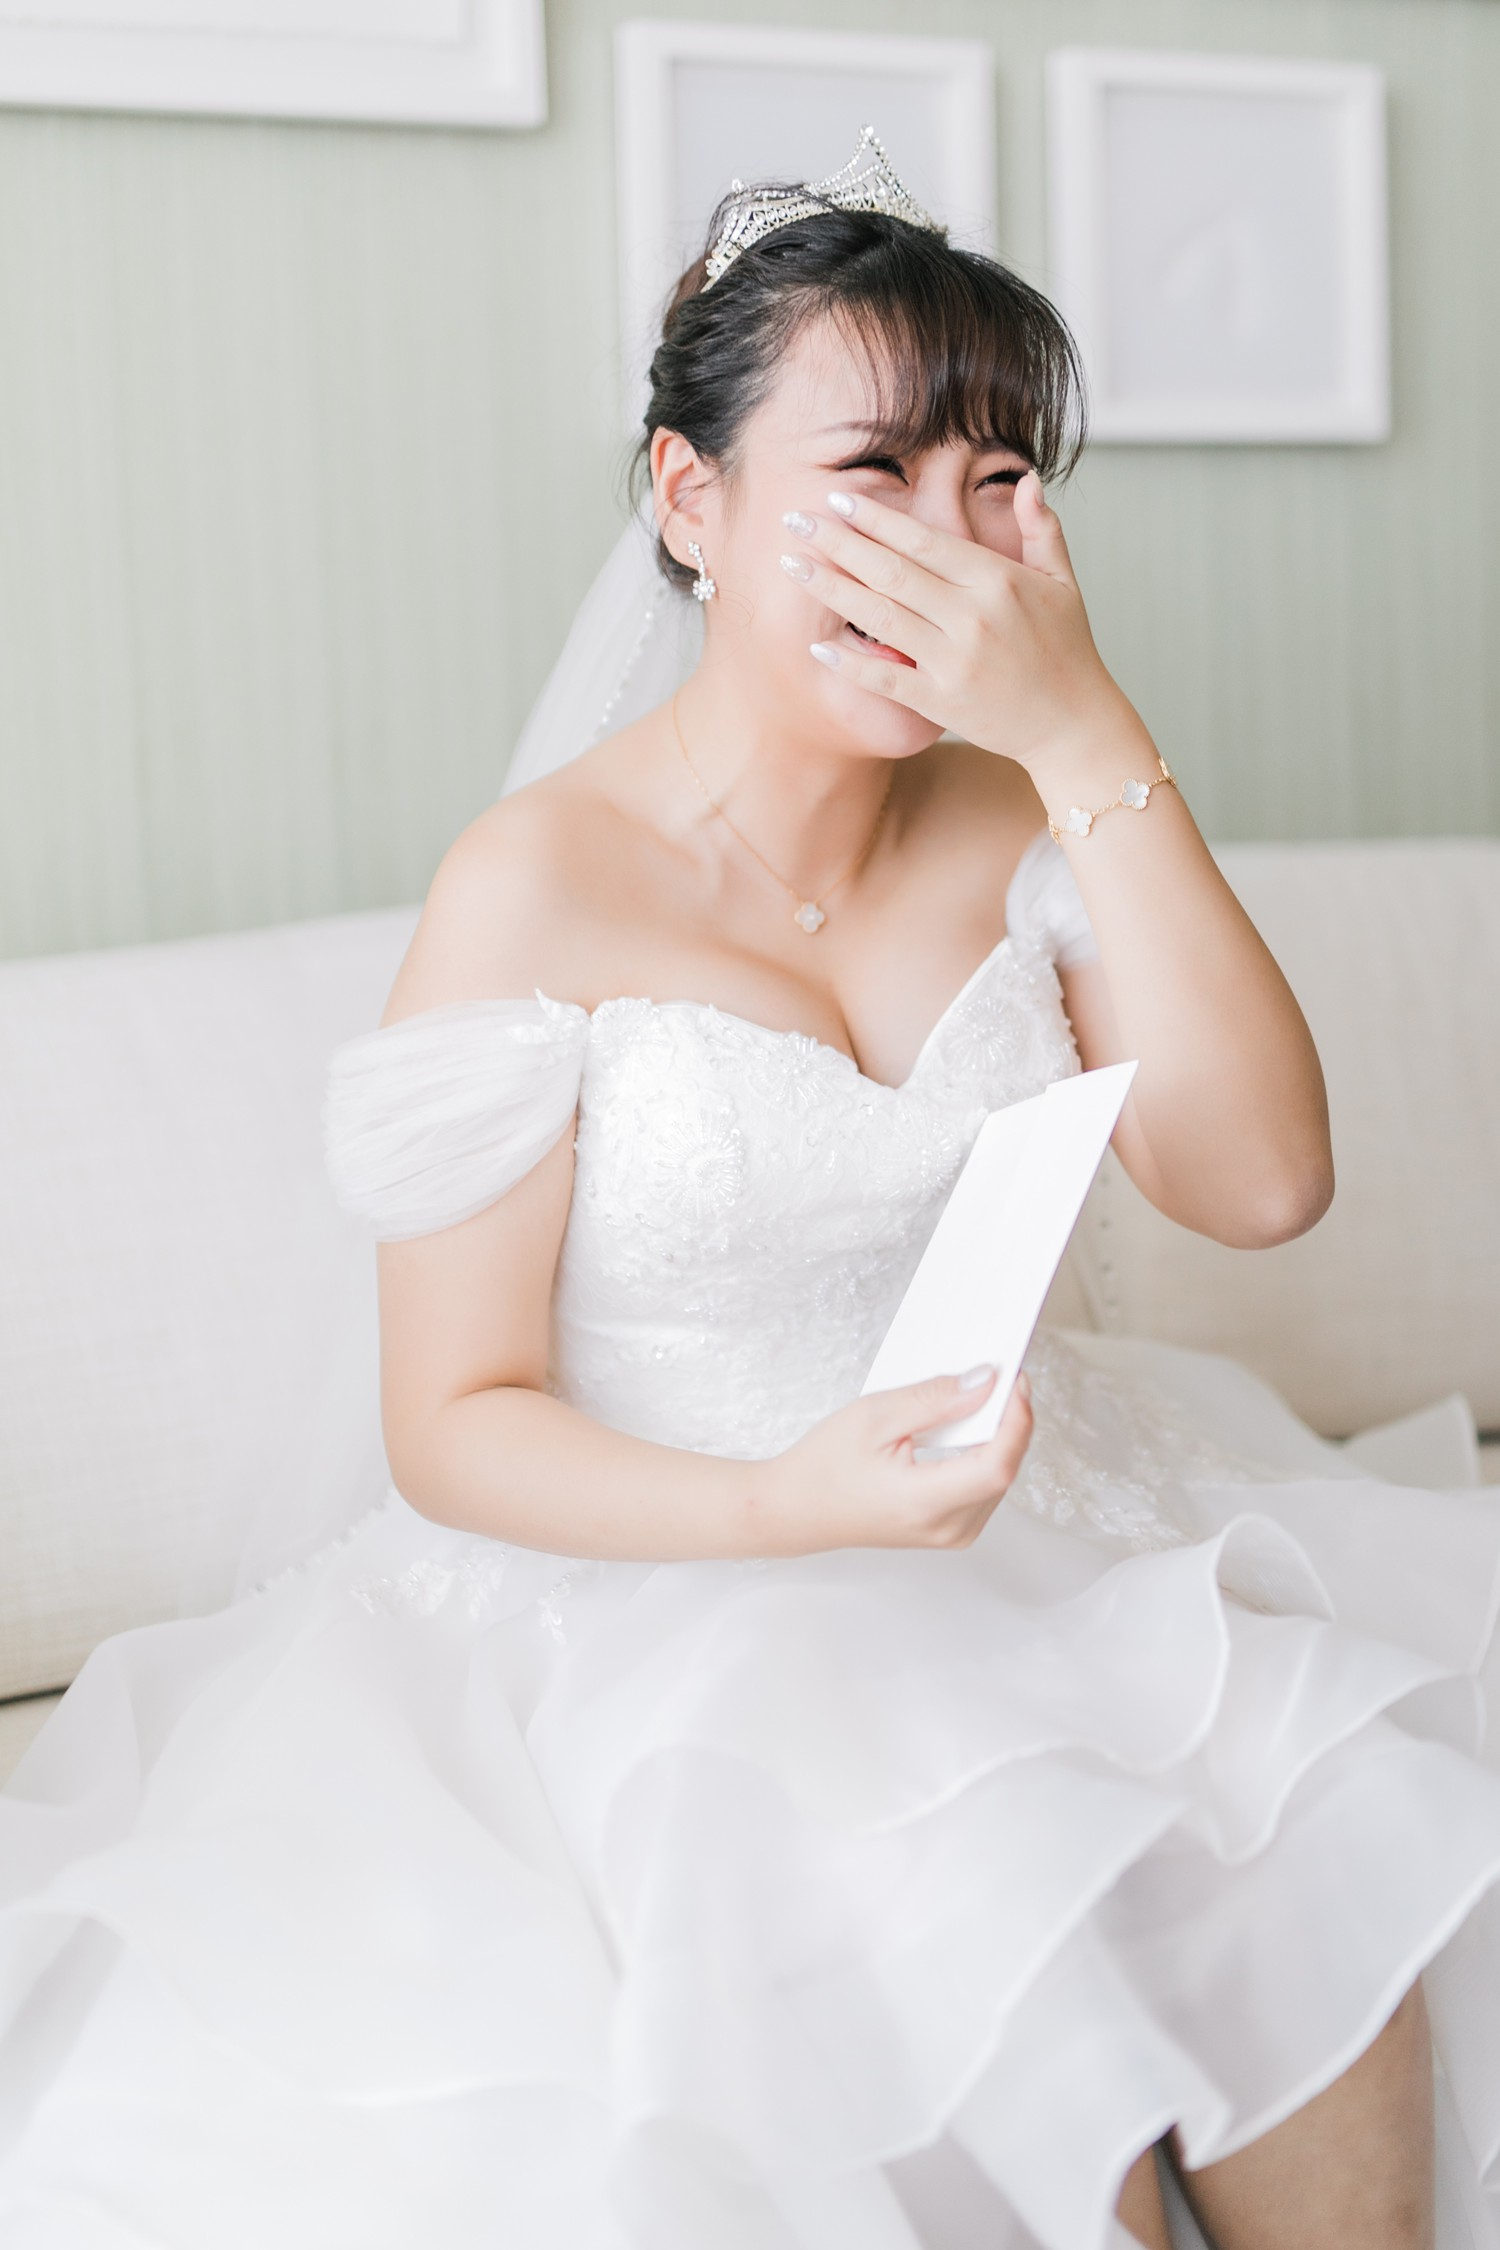 Crying Bride Luxury Yorkville Vinci Toronto Four Season Hotel Wedding Photos with Chinese Bride and Groom